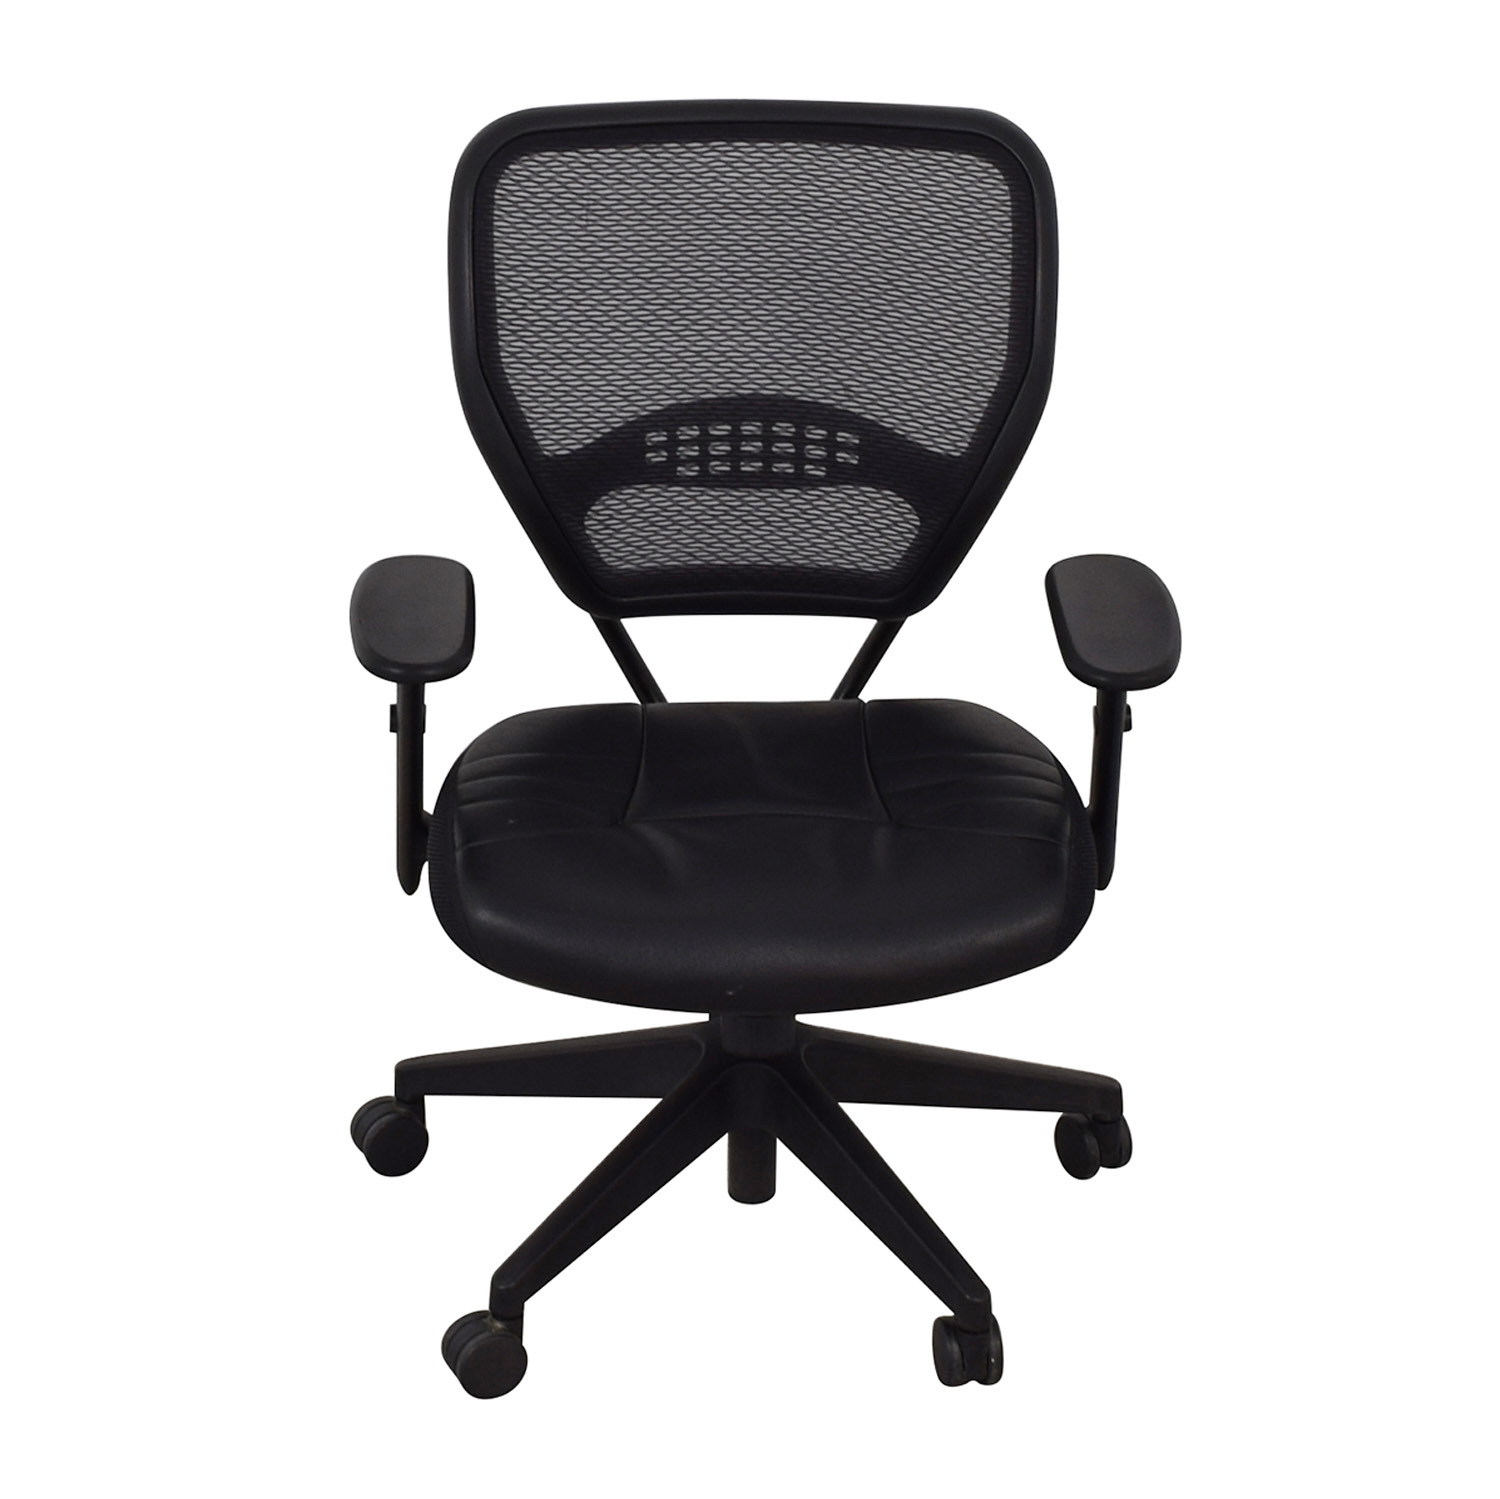 Office Star Office Star Mesh Desk Chair coupon